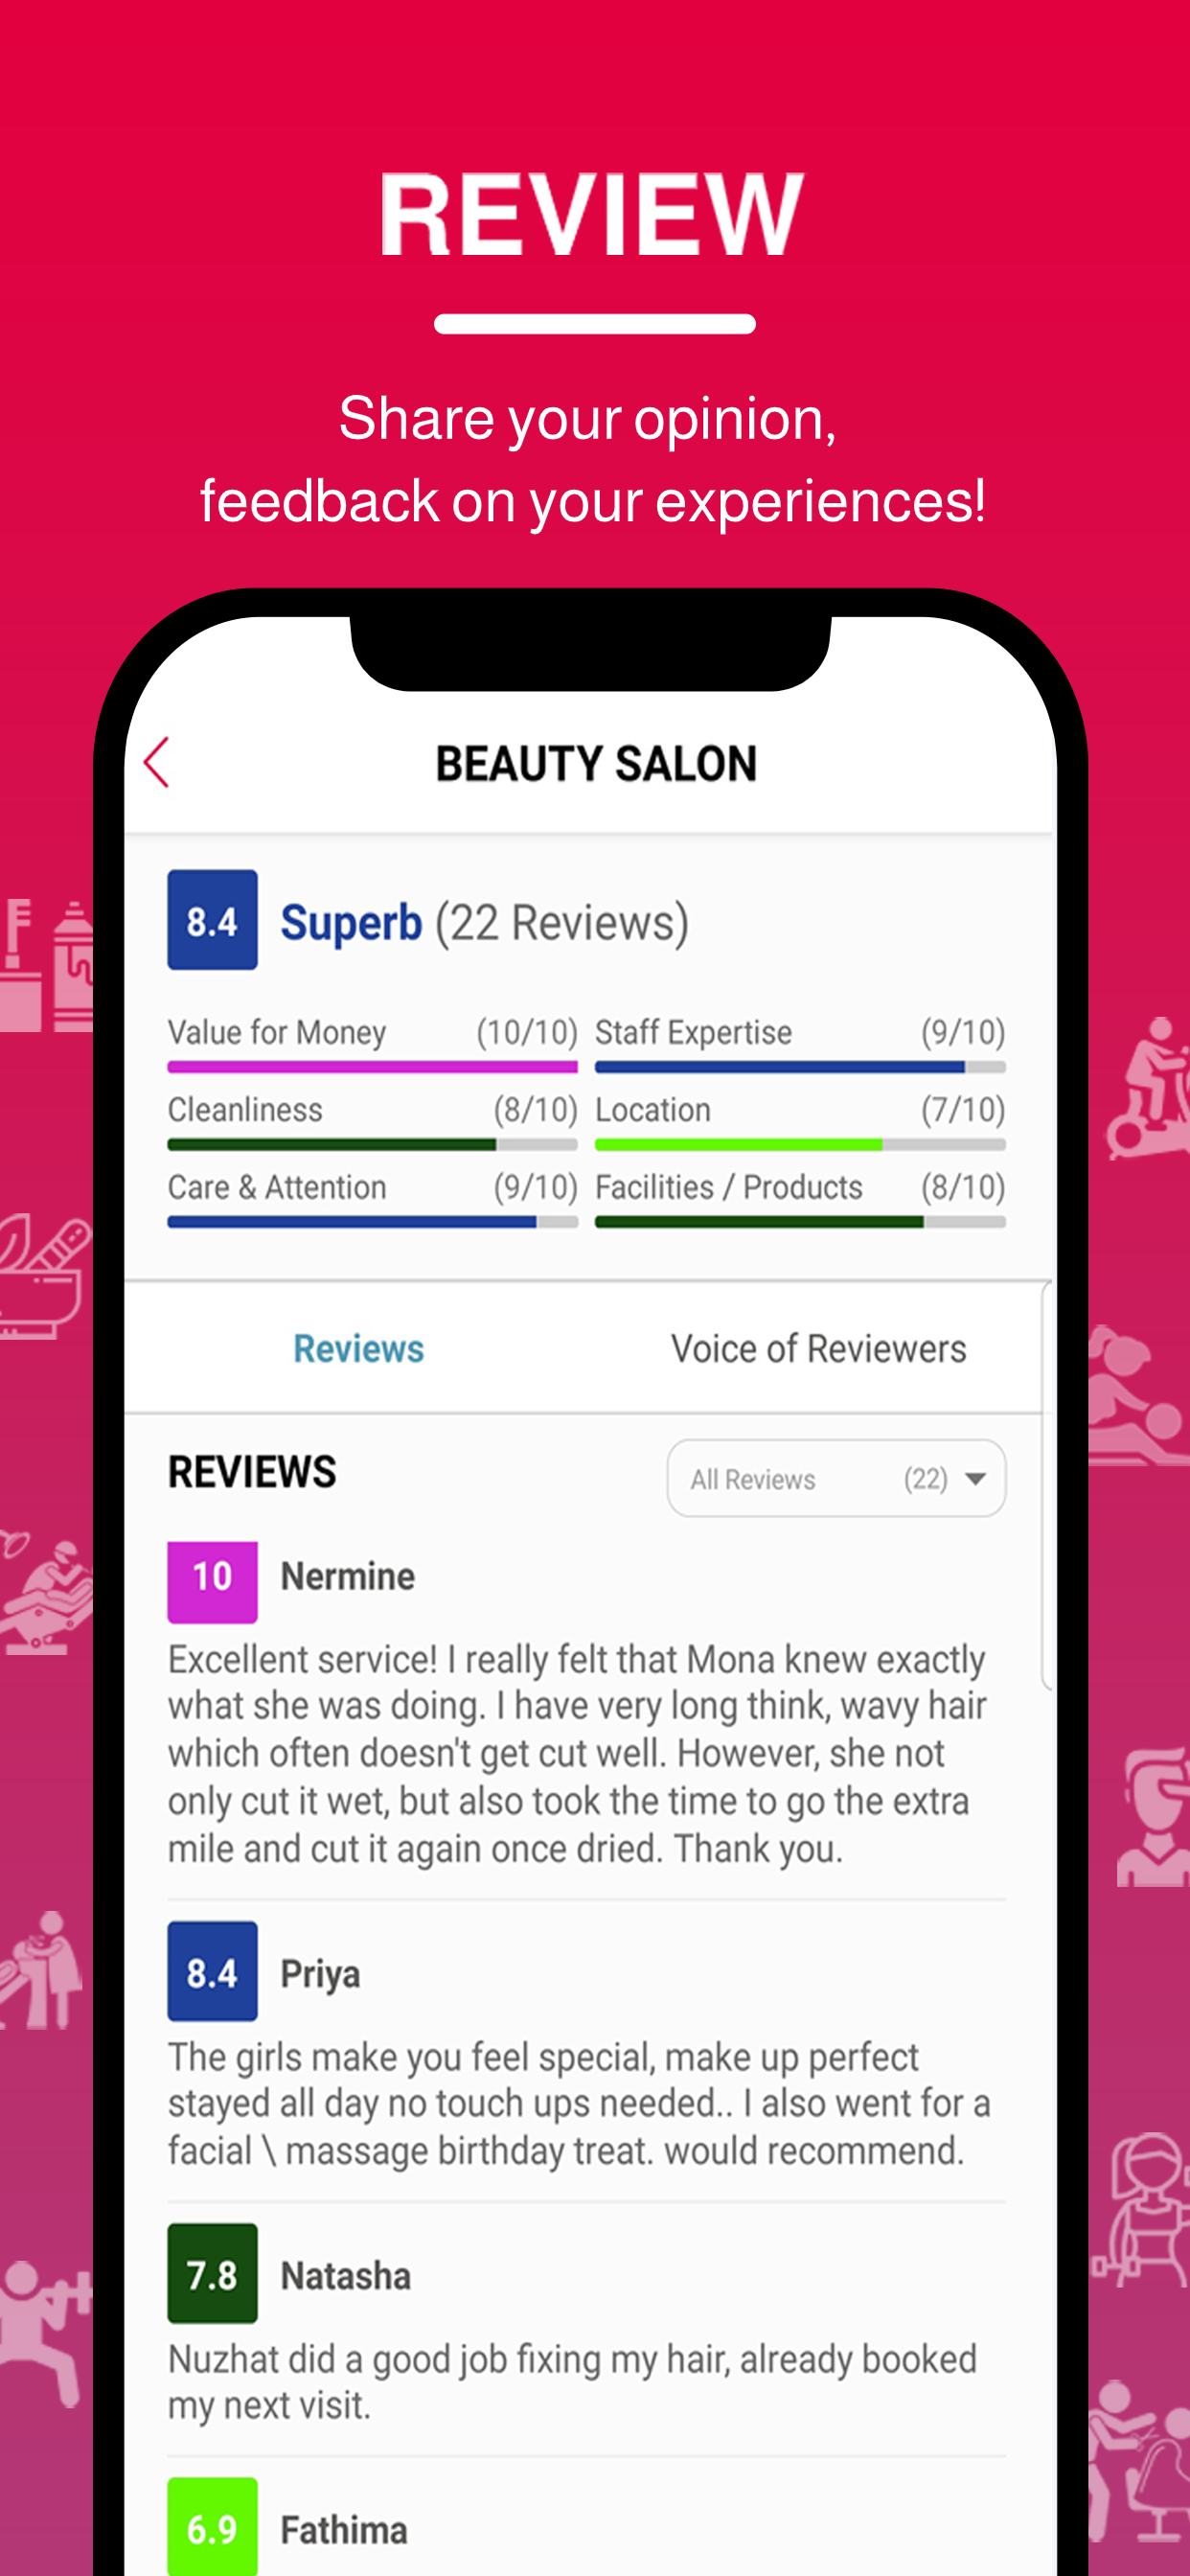 Beutics – Beauty, Fitness and Home services